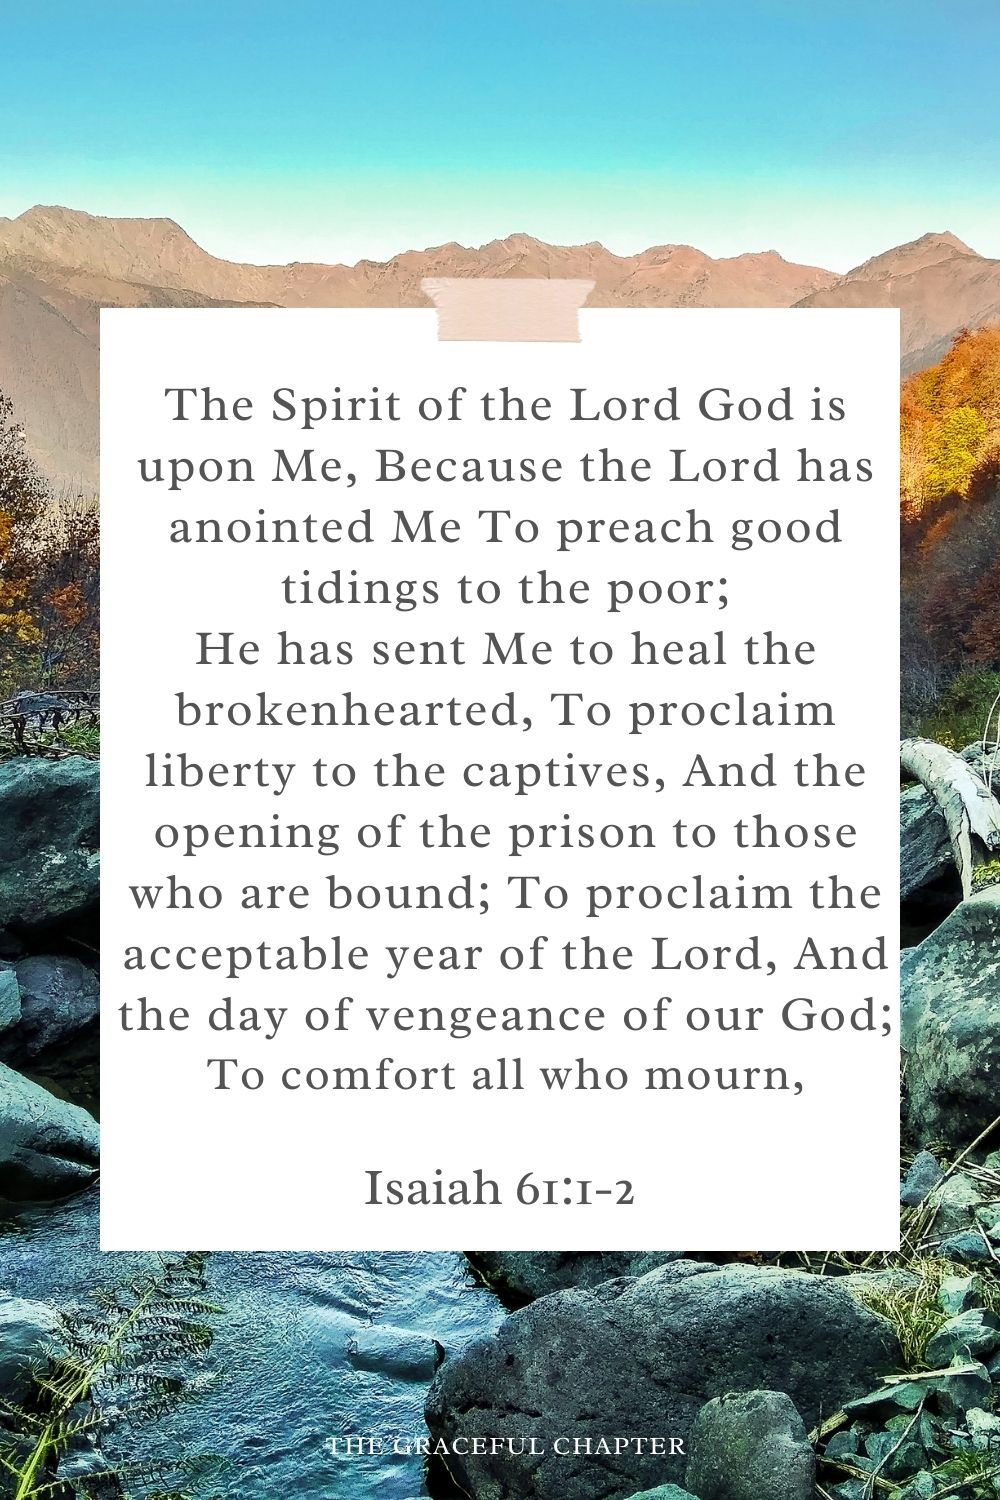 The Spirit of the Lord God is upon Me, Because the Lord has anointed Me To preach good tidings to the poor; He has sent Me to heal the brokenhearted, To proclaim liberty to the captives, And the opening of the prison to those who are bound; To proclaim the acceptable year of the Lord, And the day of vengeance of our God; To comfort all who mourn, Isaiah 61:1-2